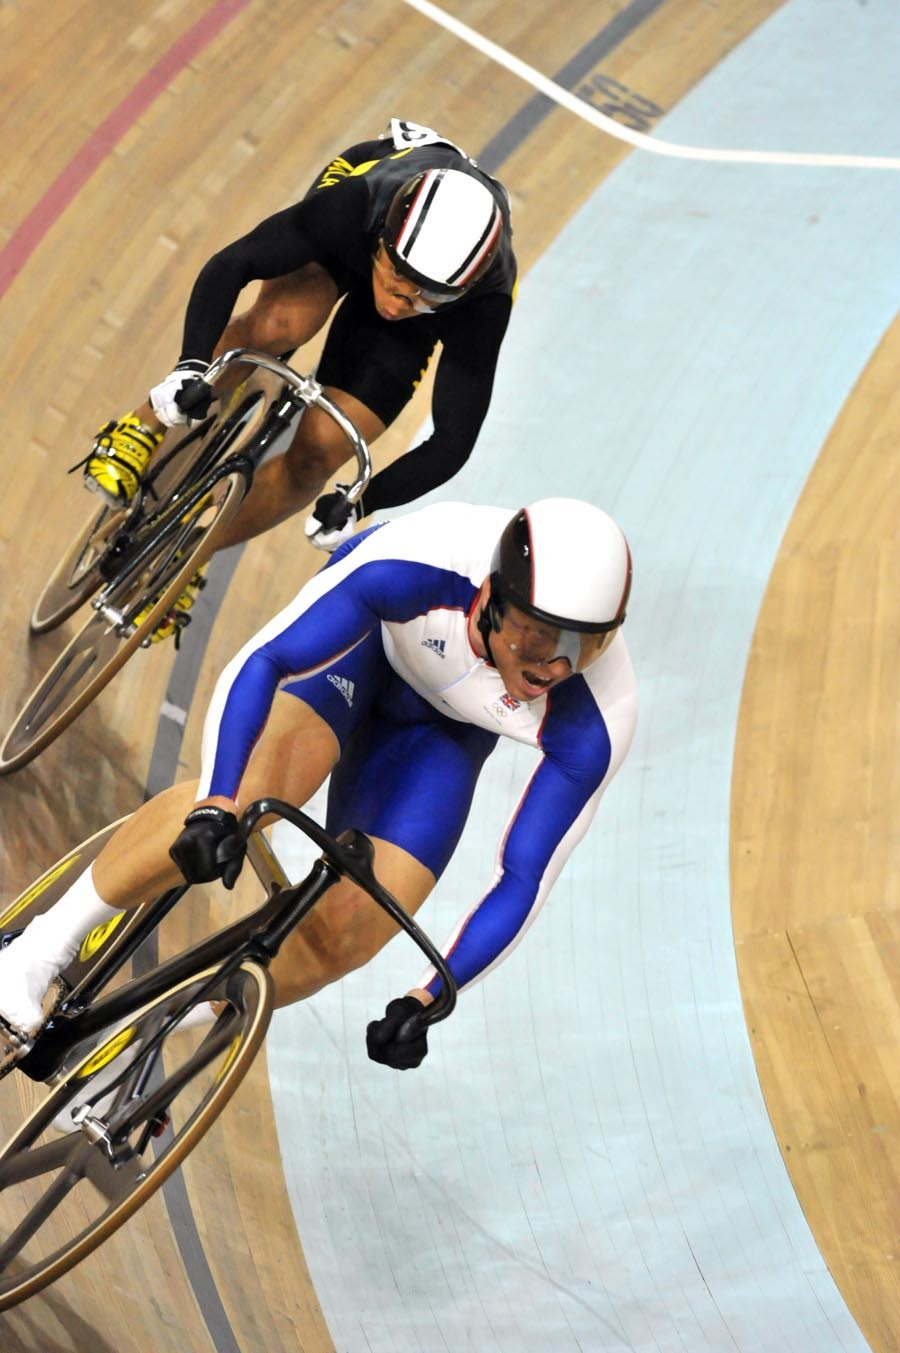 Chris Hoy is a sprint God